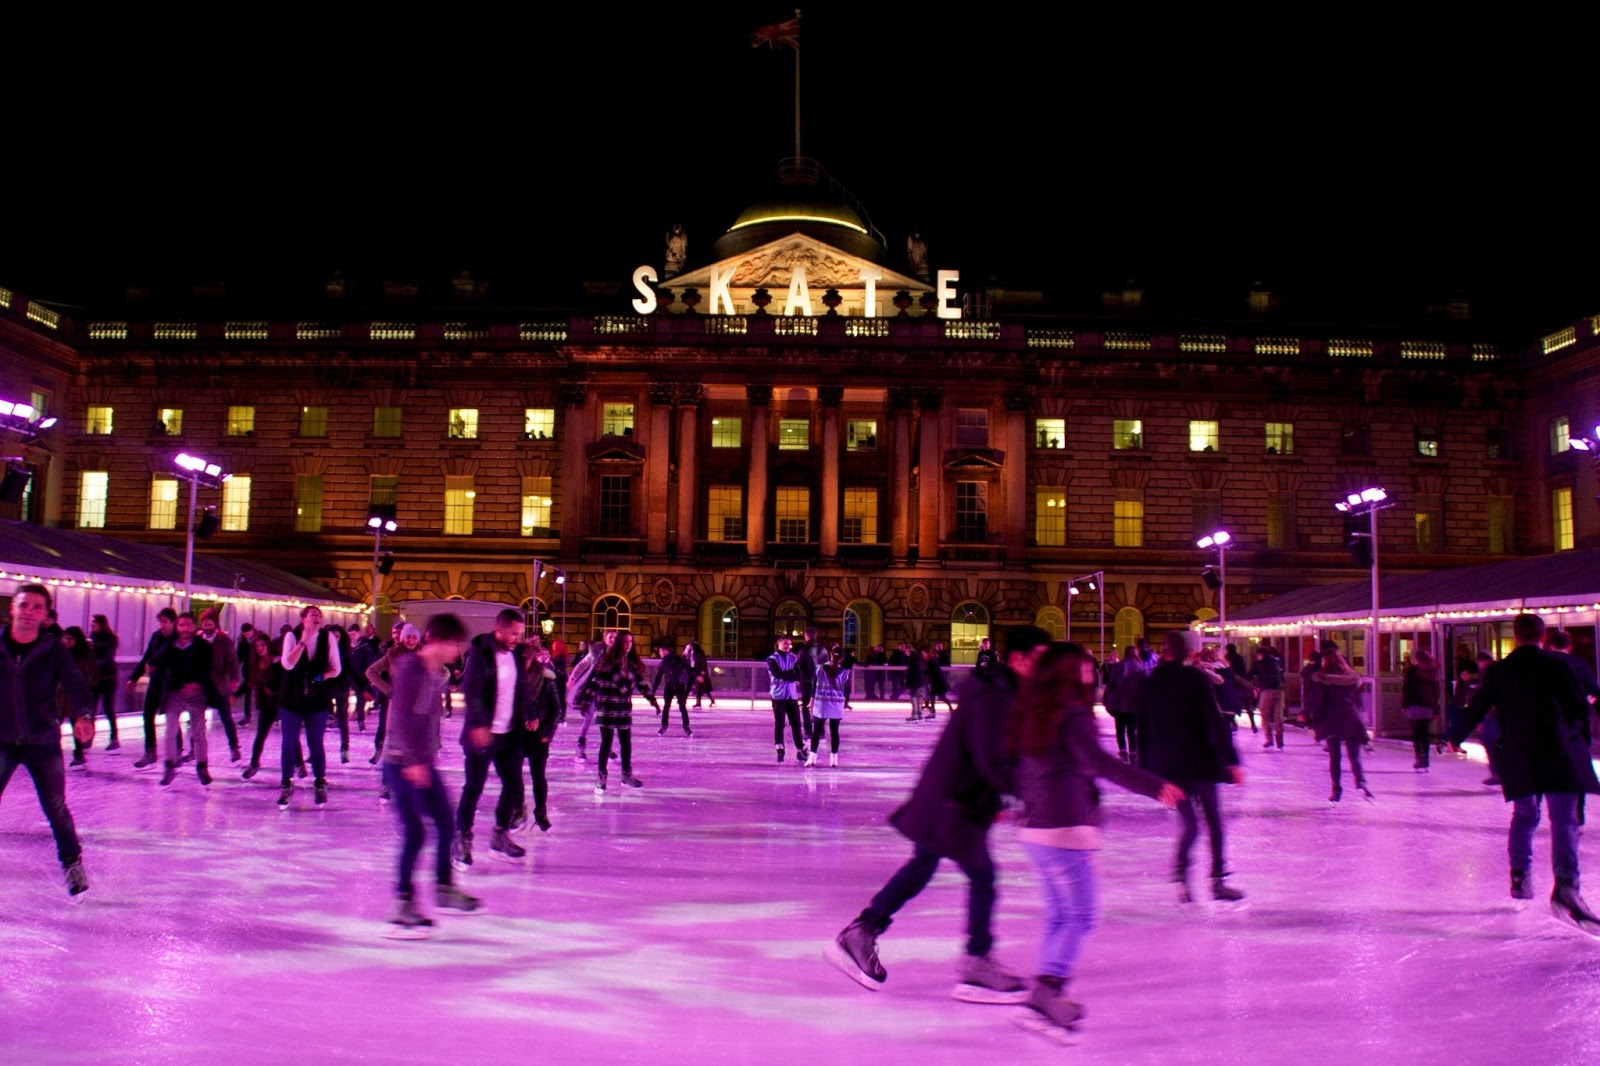 jessie u0026 jake skate at somerset house with fortnum u0026 mason